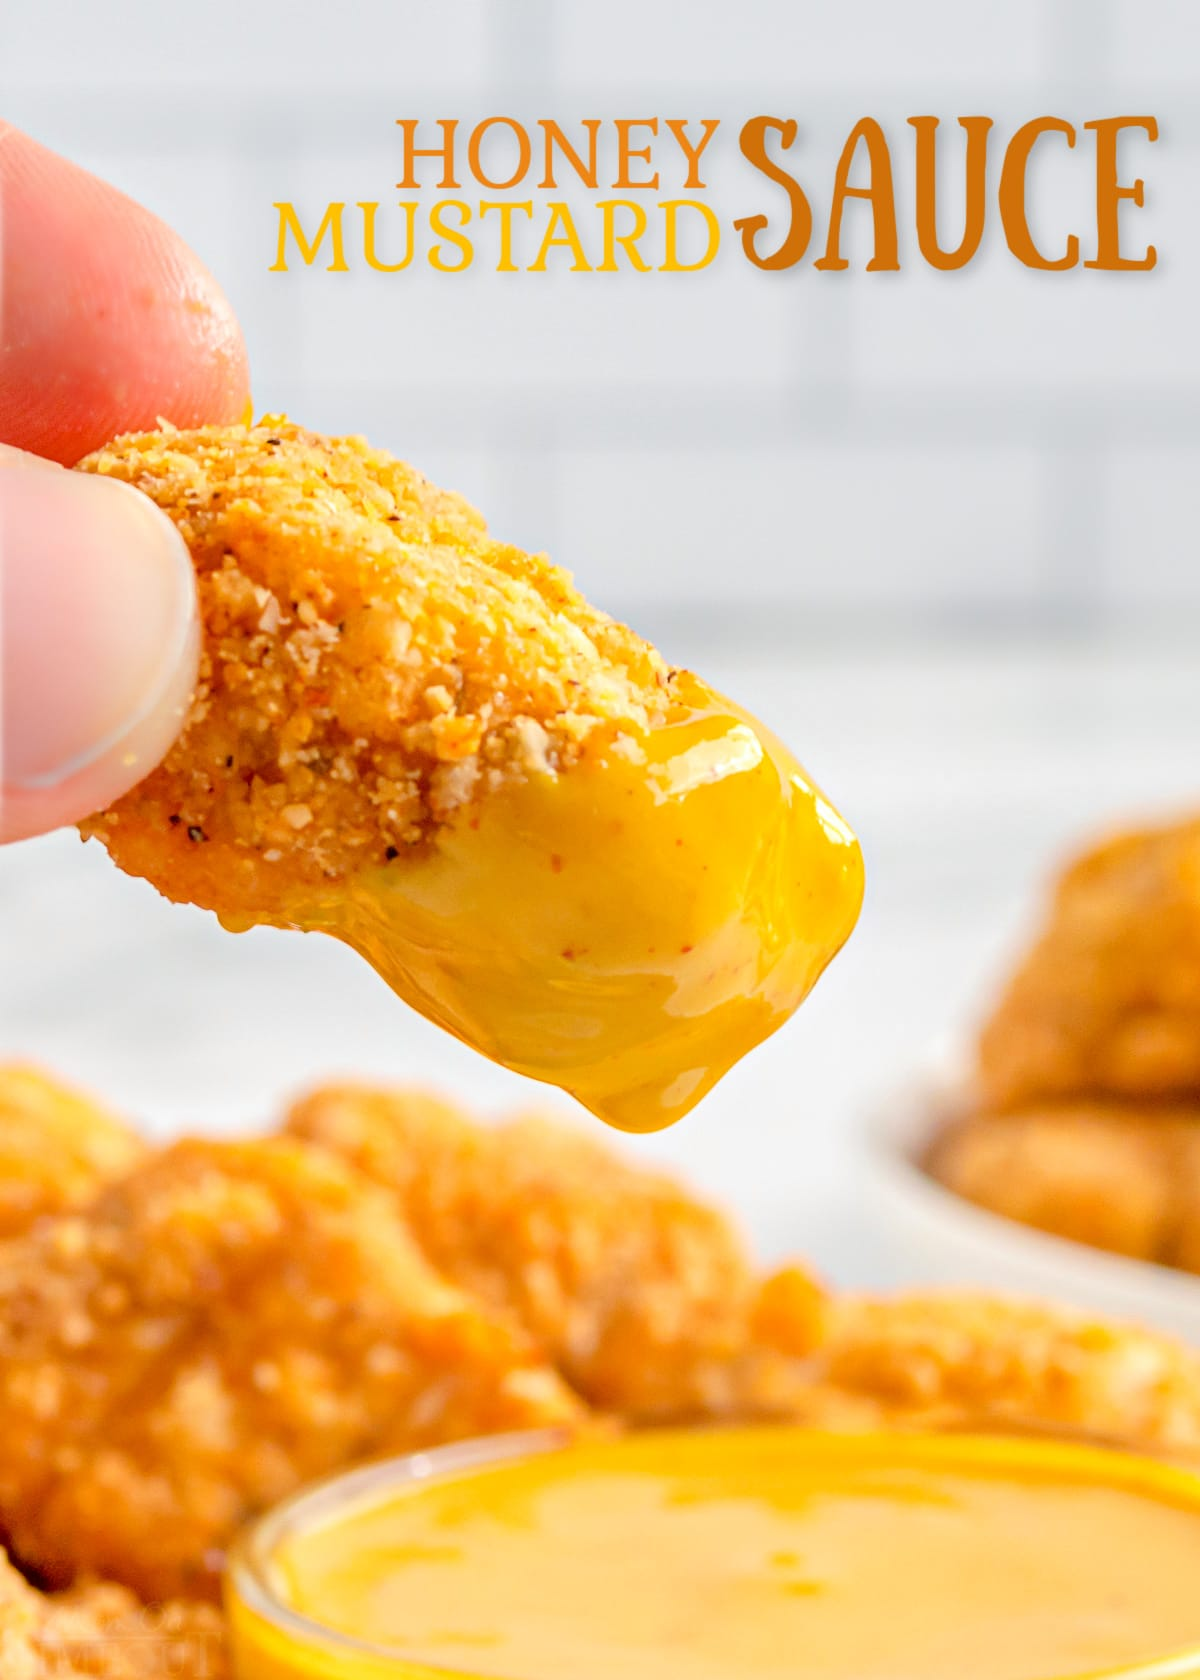 chicken nugget being dipped in honey mustard.